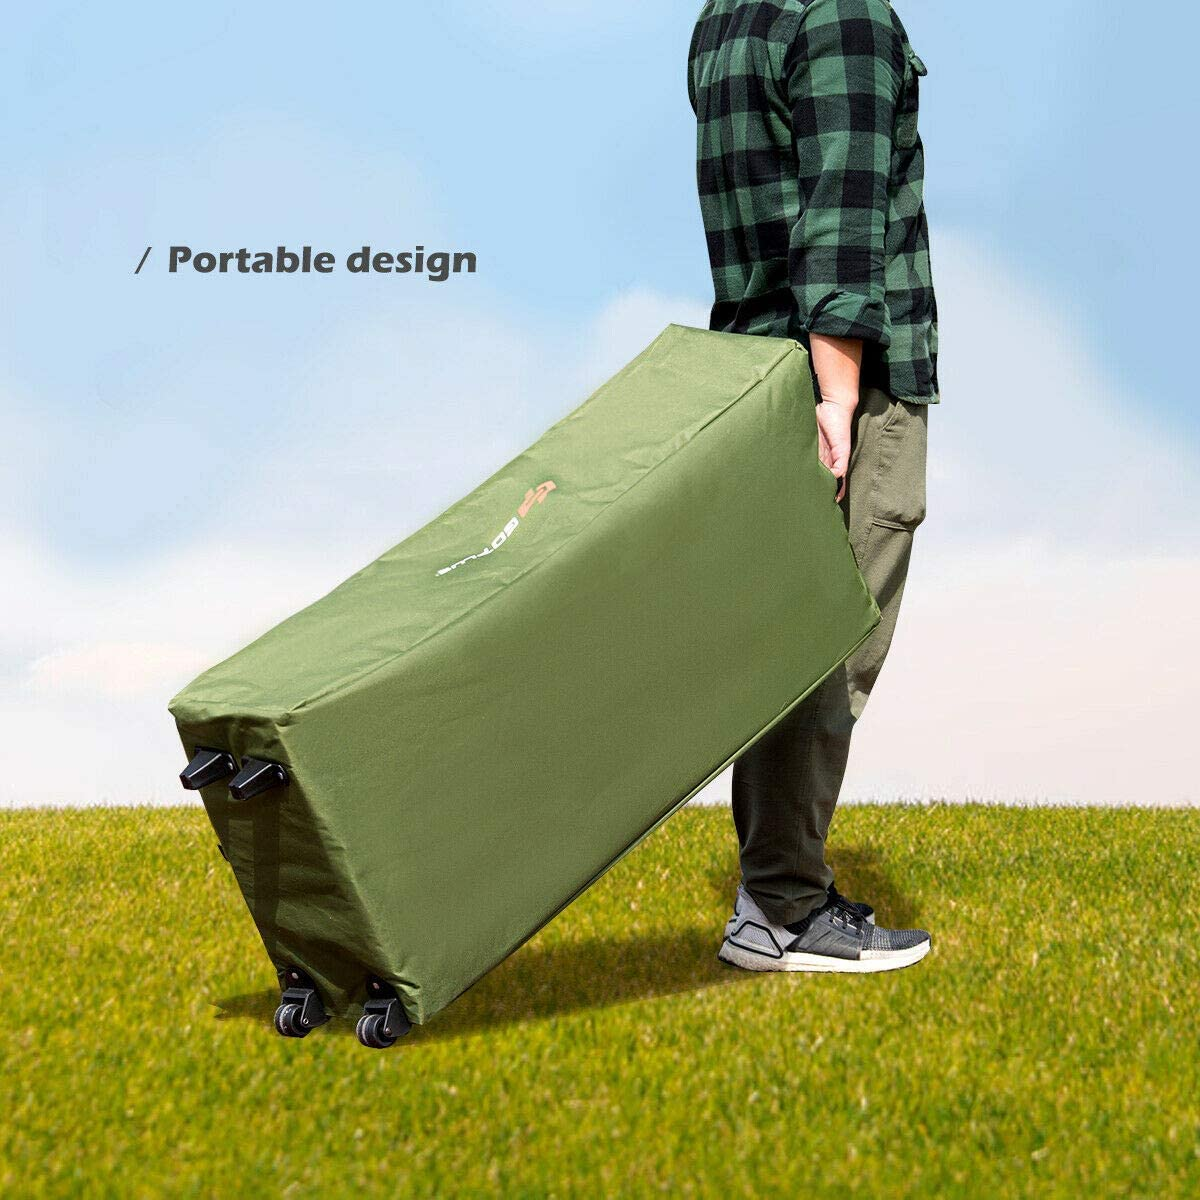 Details about  /1pc Foot Air Inflation Tent Air Mattress Ultralight Portable Outdoor Camping Hik